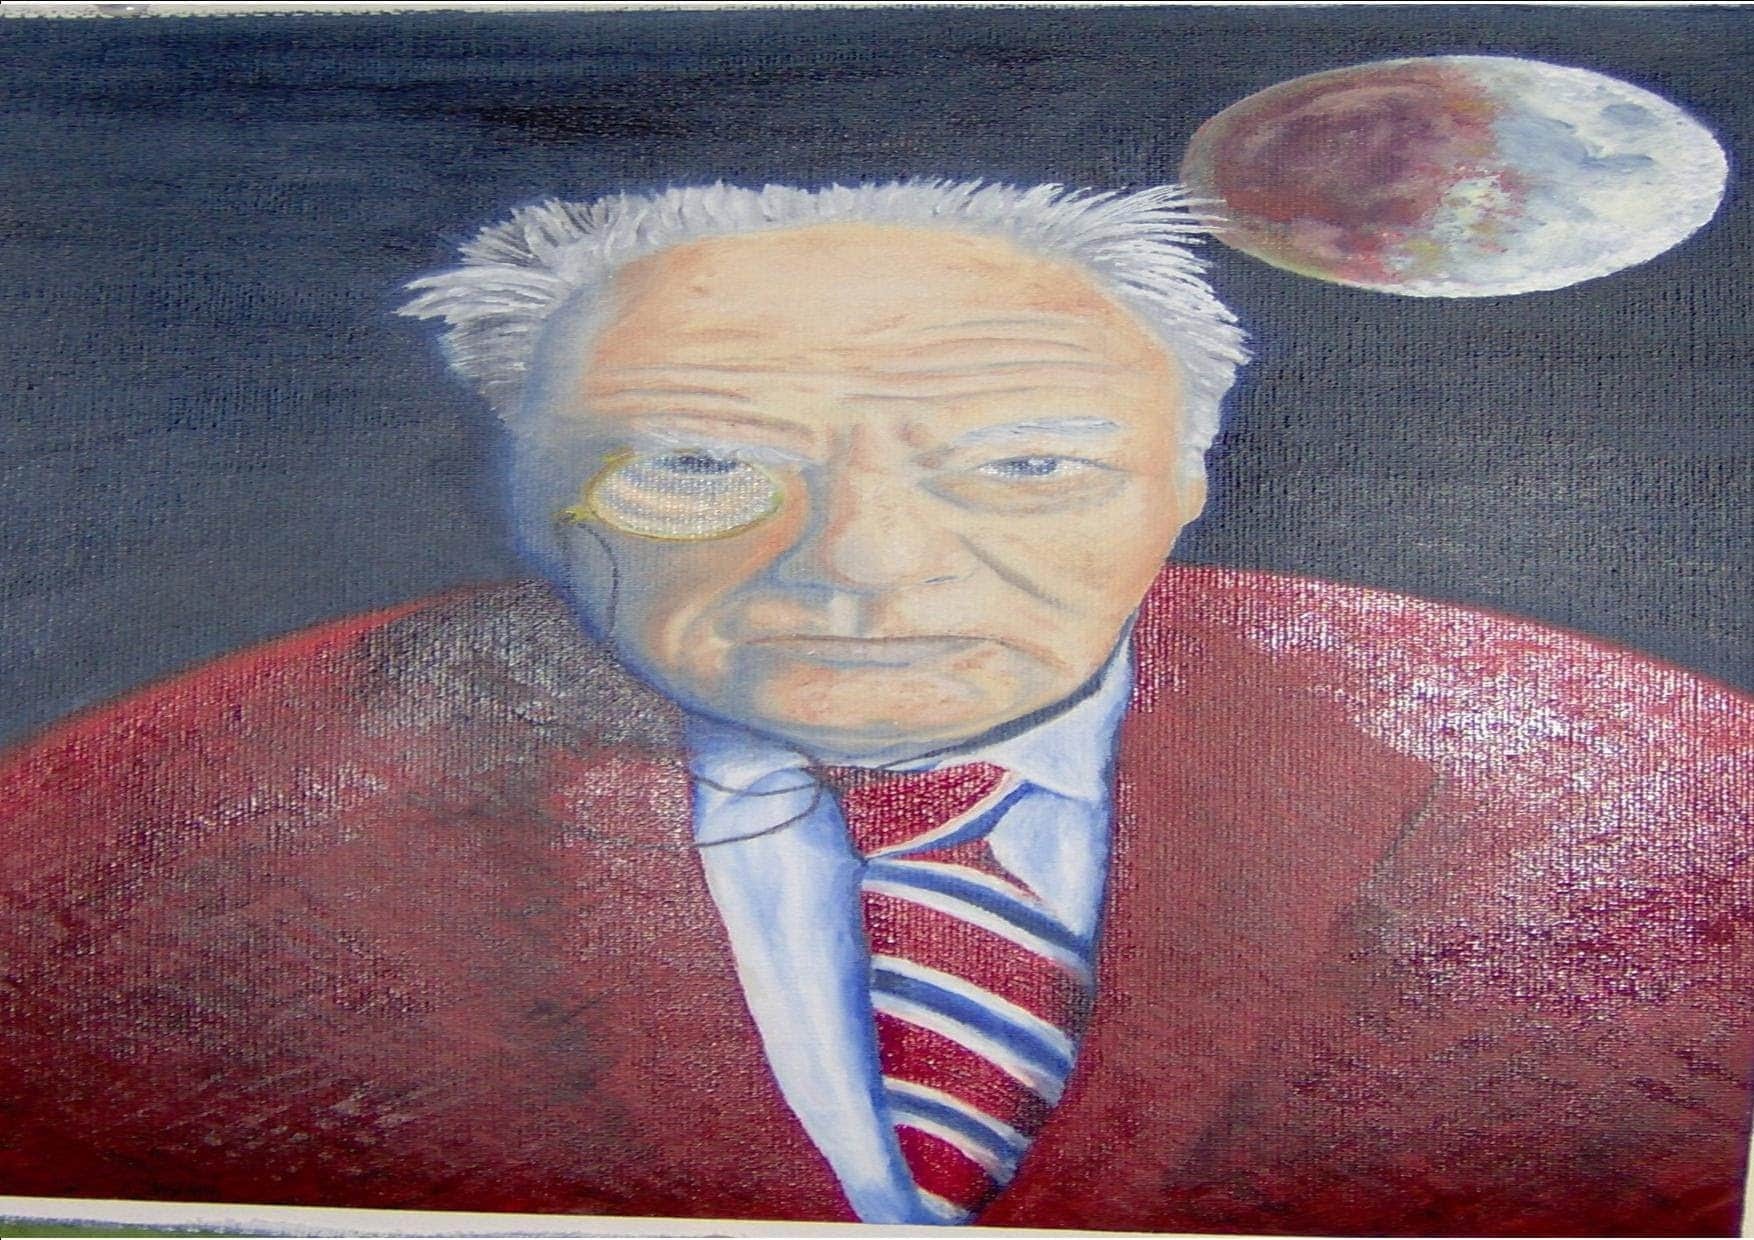 Tribute to Sir Patrick Moore who died today. 1